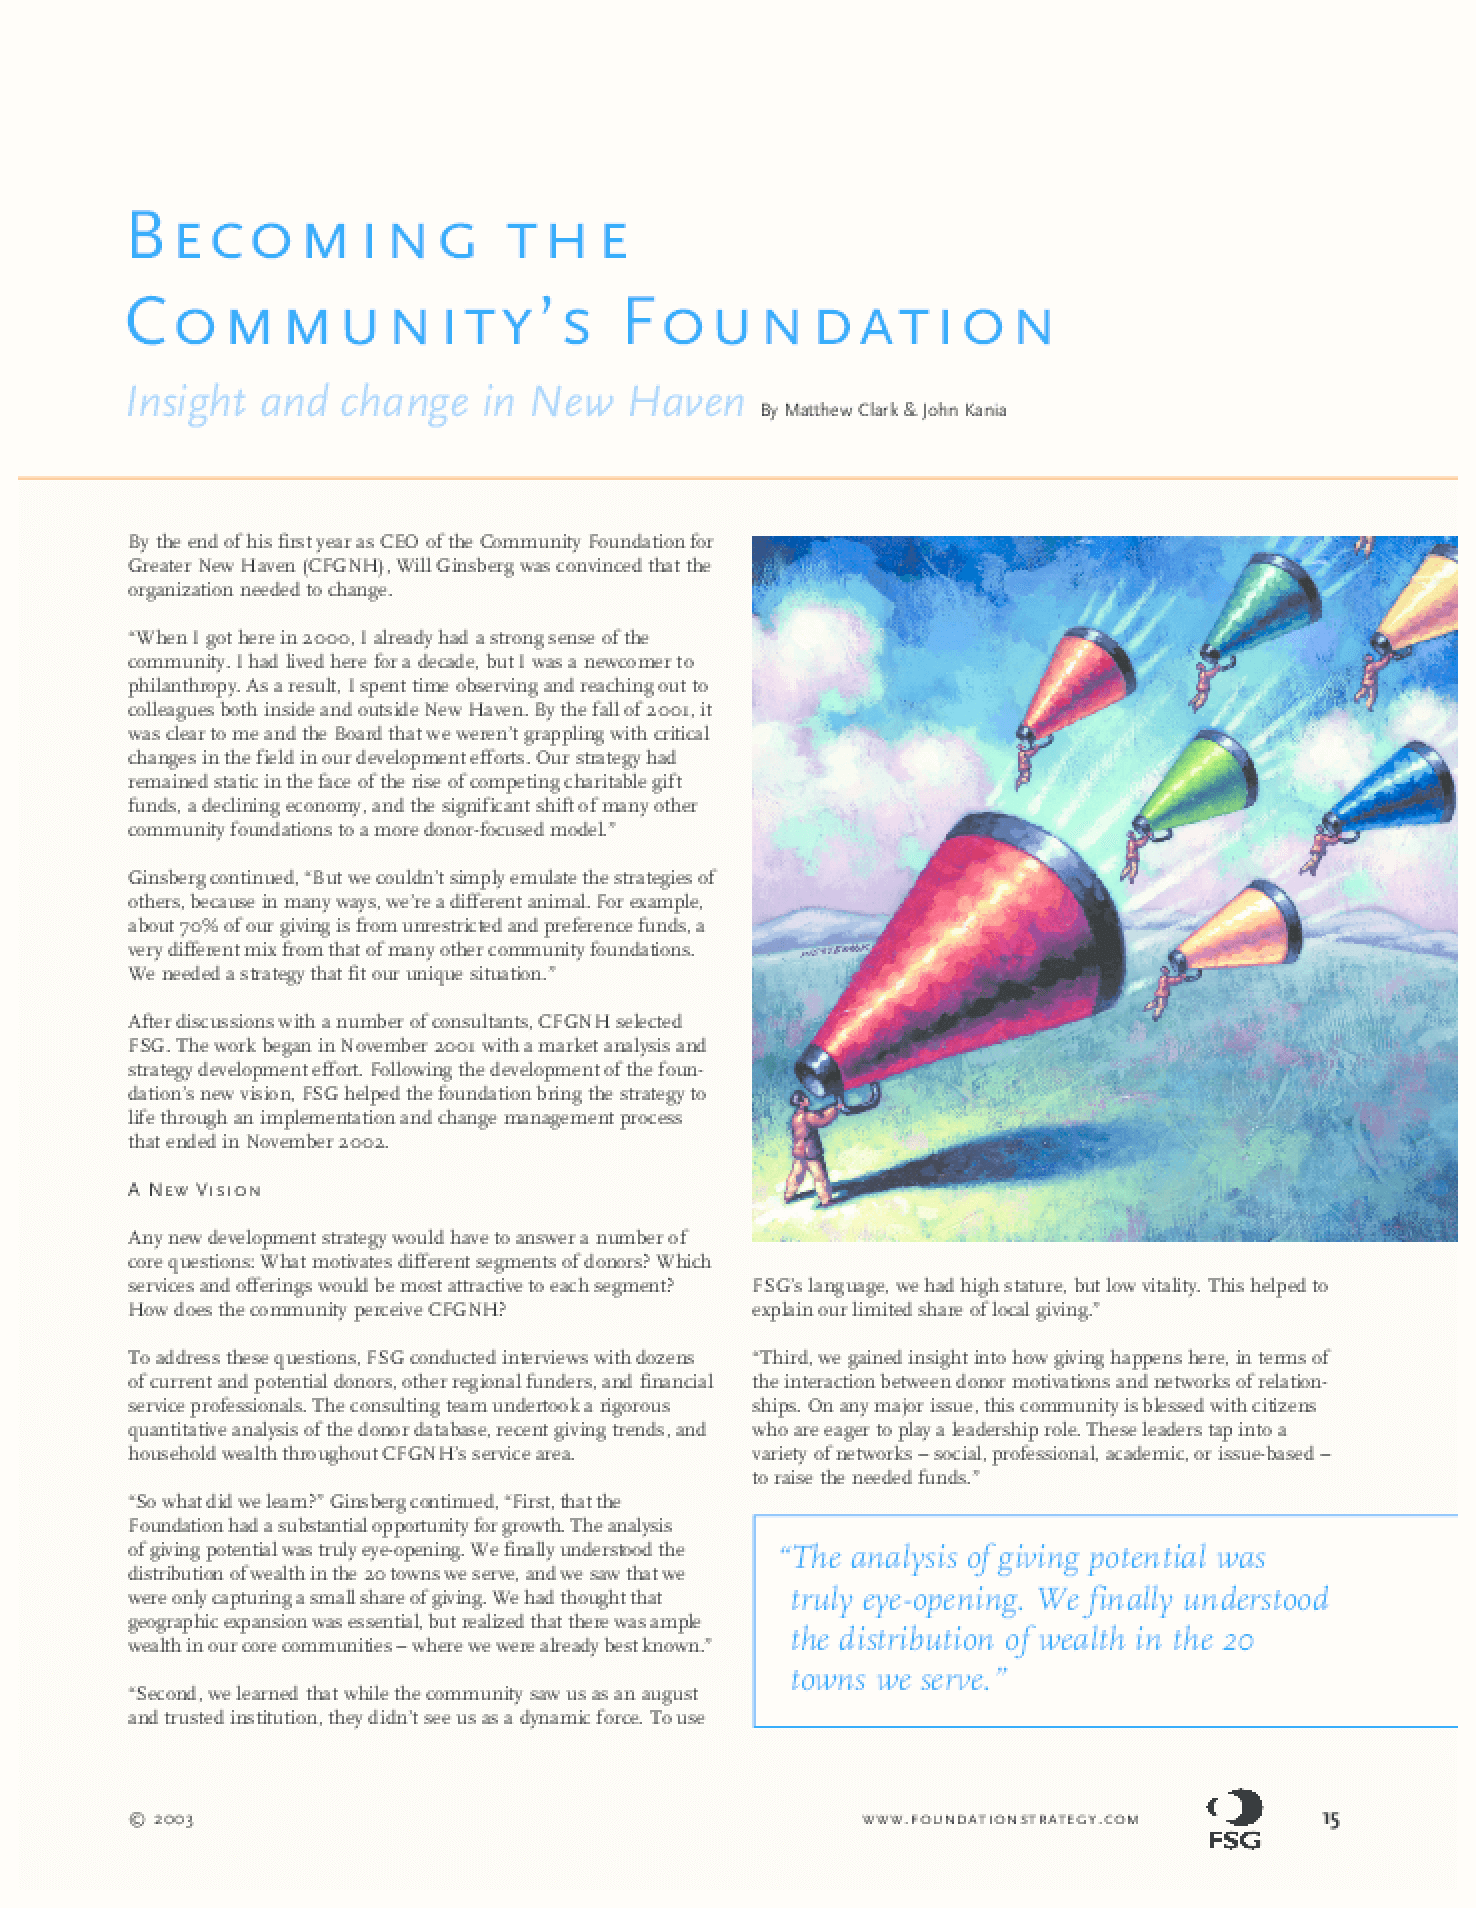 Becoming the Community's Foundation: Insight and Change in New Haven